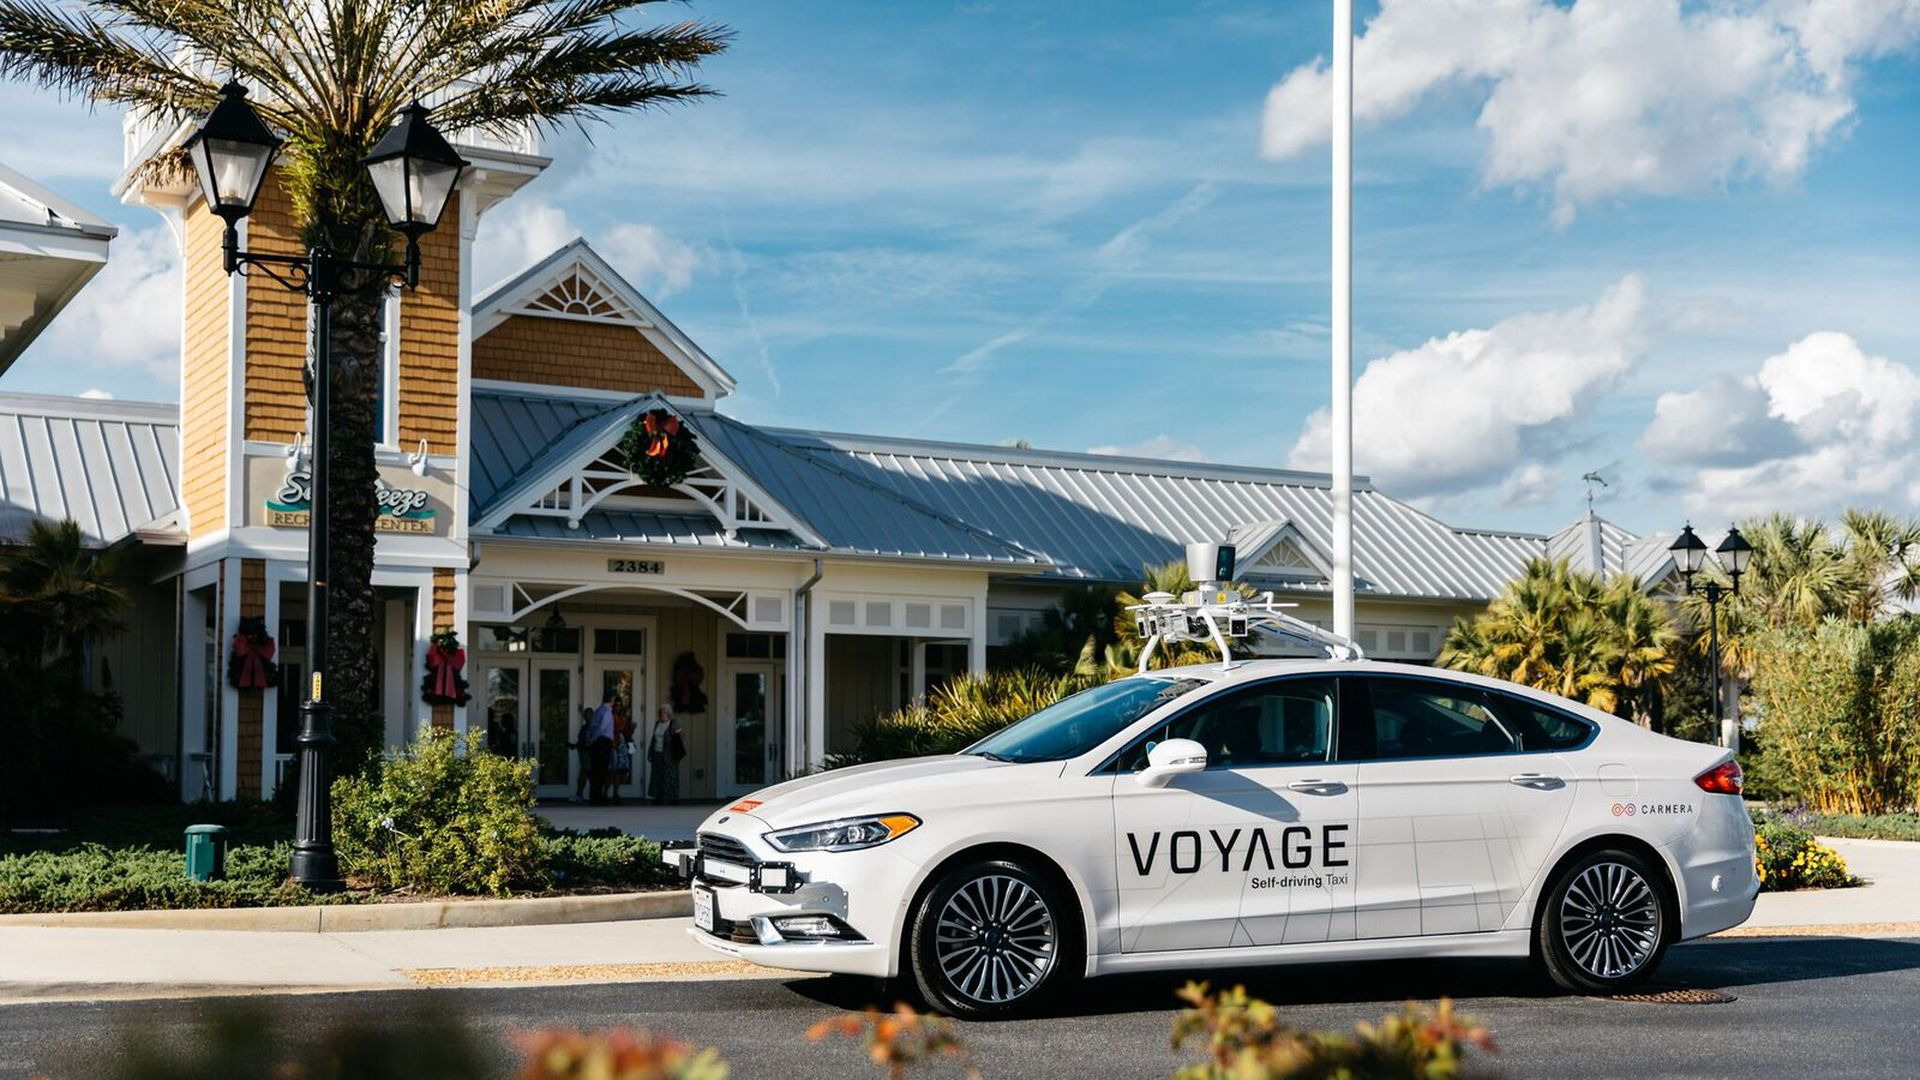 Voyage low-speed AV parked in a Florida retirement community